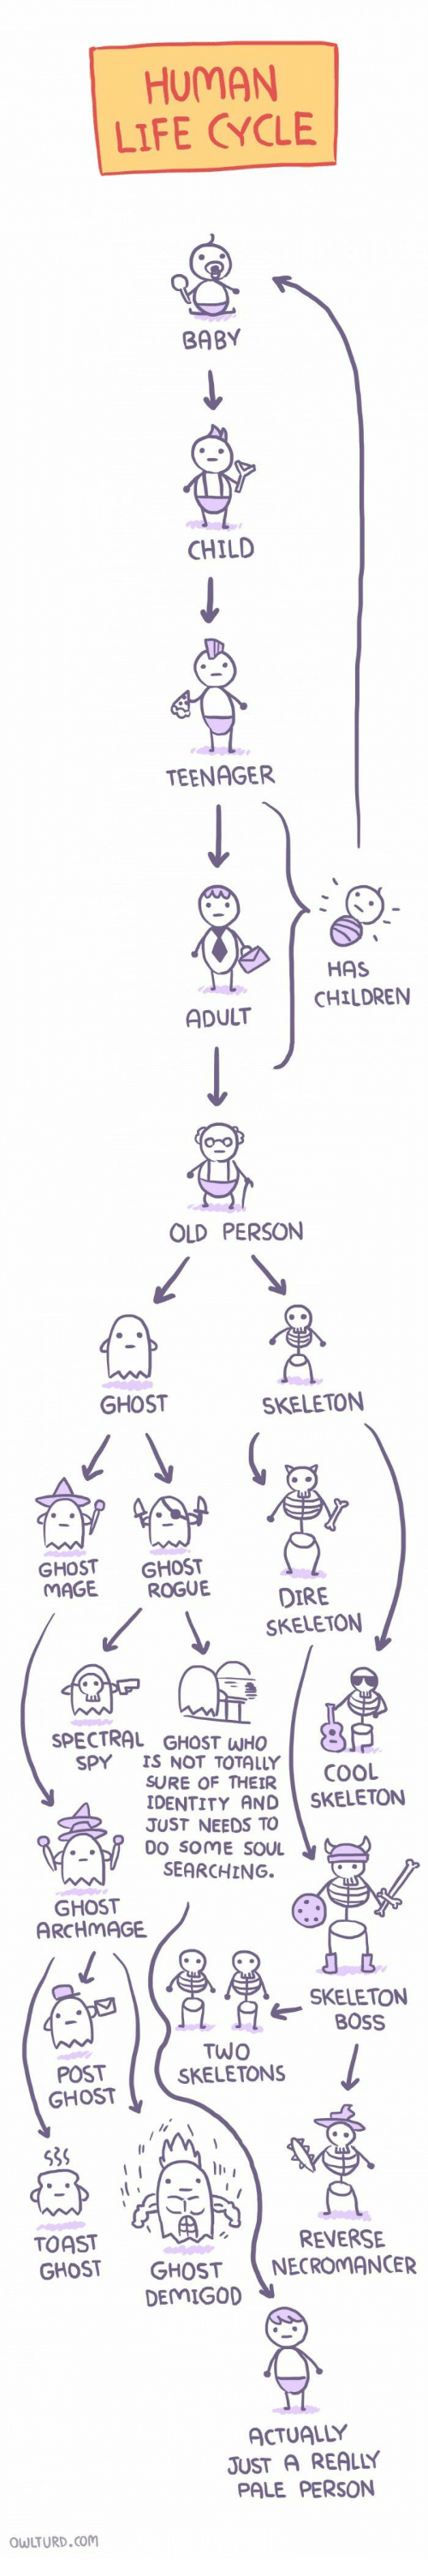 dire: HUMAN  LIFE CYCLE  BABY  CHILD  TEENAGER  HAS  CHILDRENN  ADULT  OLD PERSON  GHOST  SKELETON  GHOST GHOST  MAGE ROGUE  DIRE  SKELETON  SPECTRAL GHOST WHO  SPY IS NOT TOTALLY  SURE OF THEIR  COOL  DENTITY AND SKELETON  JUST NEEDS TO  DO SOME SOU  SEARCHING.  GHOST  ARCHMAGE  SKELETON  OSS  POST  GHOST  TWO  SKELETONS  la  539  TOAST  GHOST GHOSTNECROMANCER  REVERSE  DEMIGO  ACTUALLY  JUST A REALLY  PALE PERSON  WLTURD.com